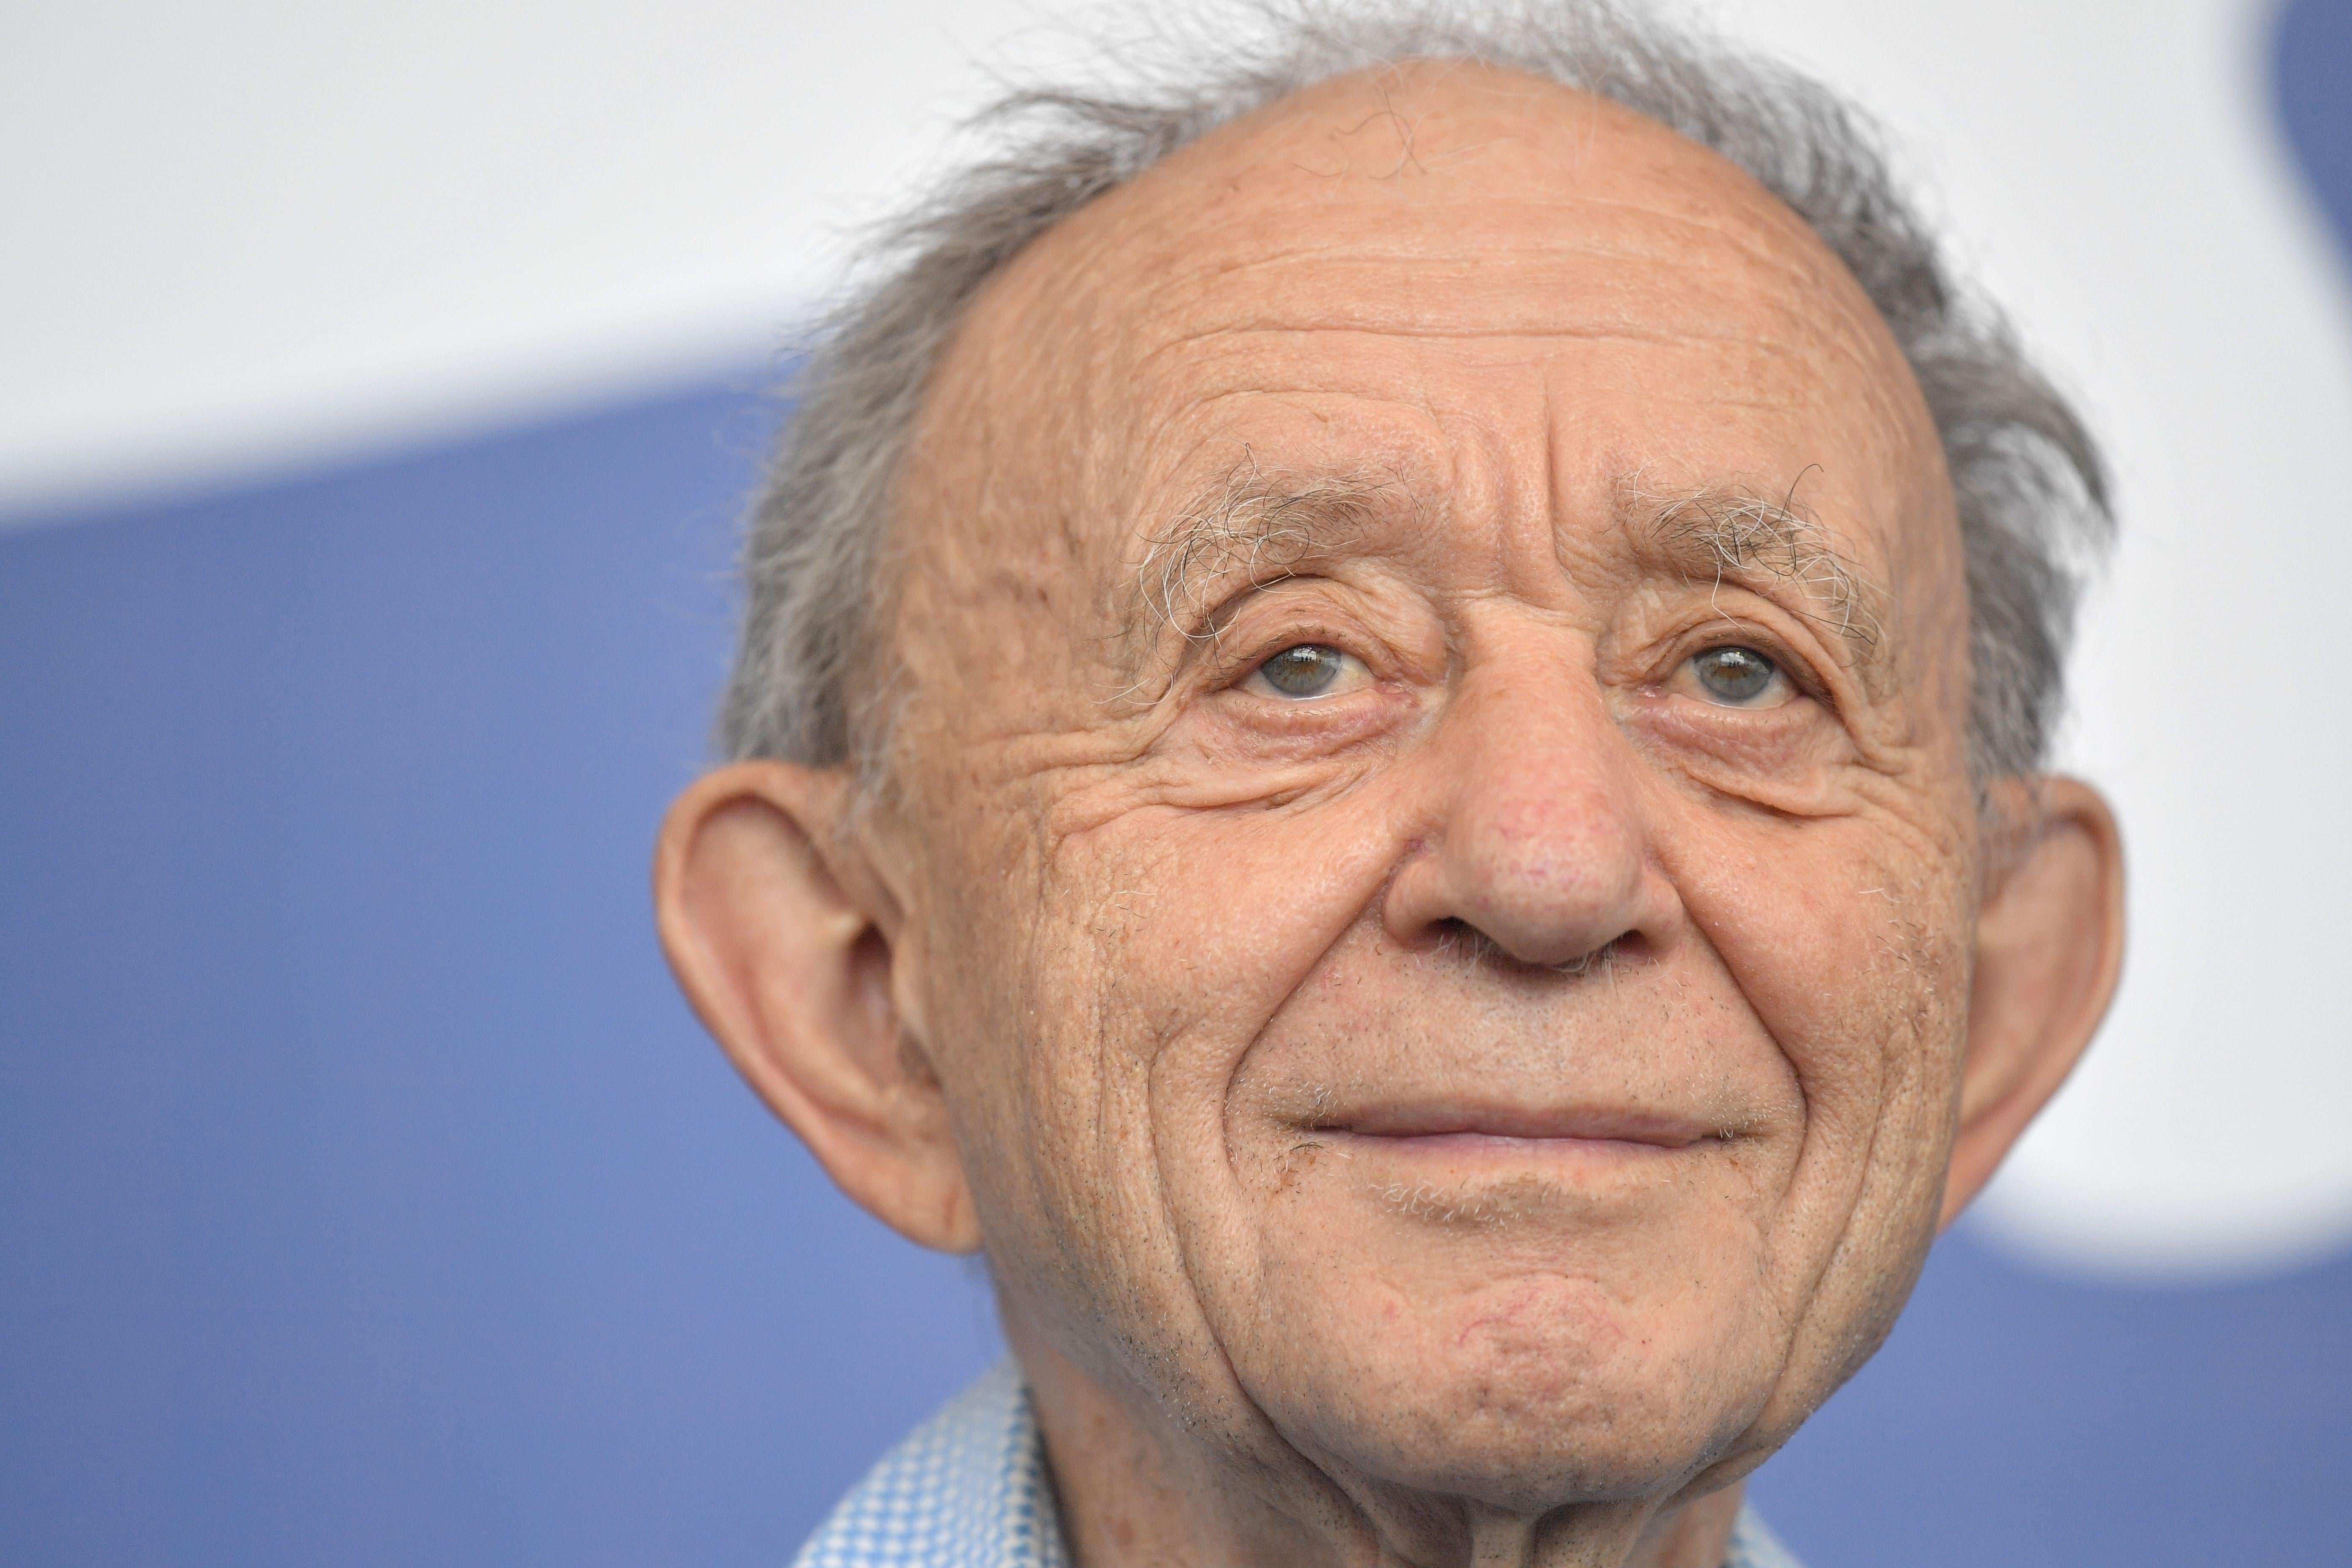 Director Frederick Wiseman attends the photocall of the movie 'Ex Libris - The New York Public Library' presented in competition at the 74th Venice Film Festival on September 4, 2017 at Venice Lido.  / AFP PHOTO / Tiziana FABI        (Photo credit should read TIZIANA FABI/AFP/Getty Images)